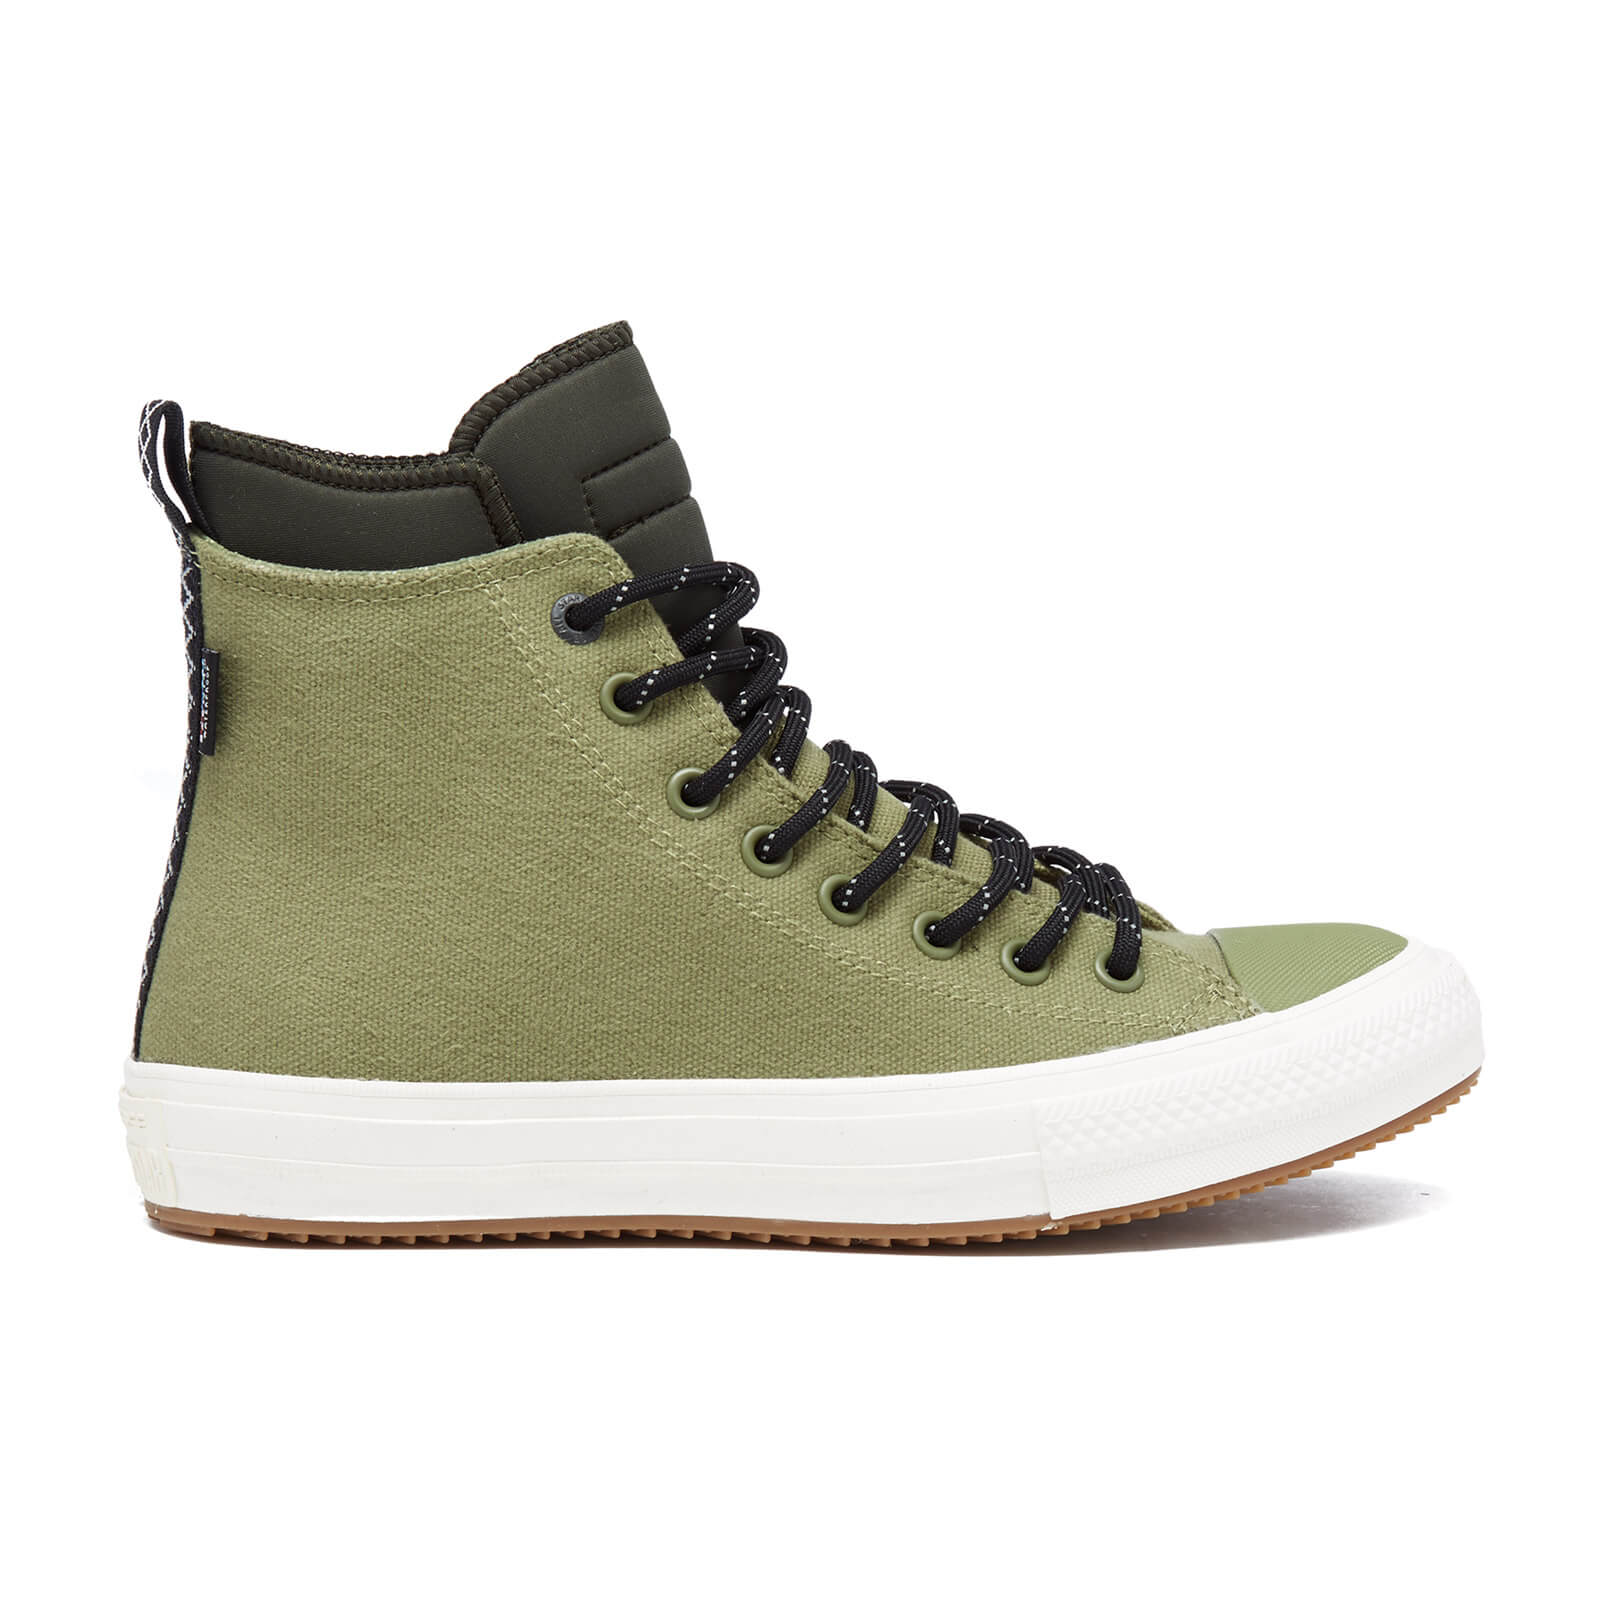 d8e6b88e6293 Converse Men s Chuck Taylor All Star II Shield Canvas Hi-Top Trainers -  Fatigue Green Green Onyn Egret Mens Footwear